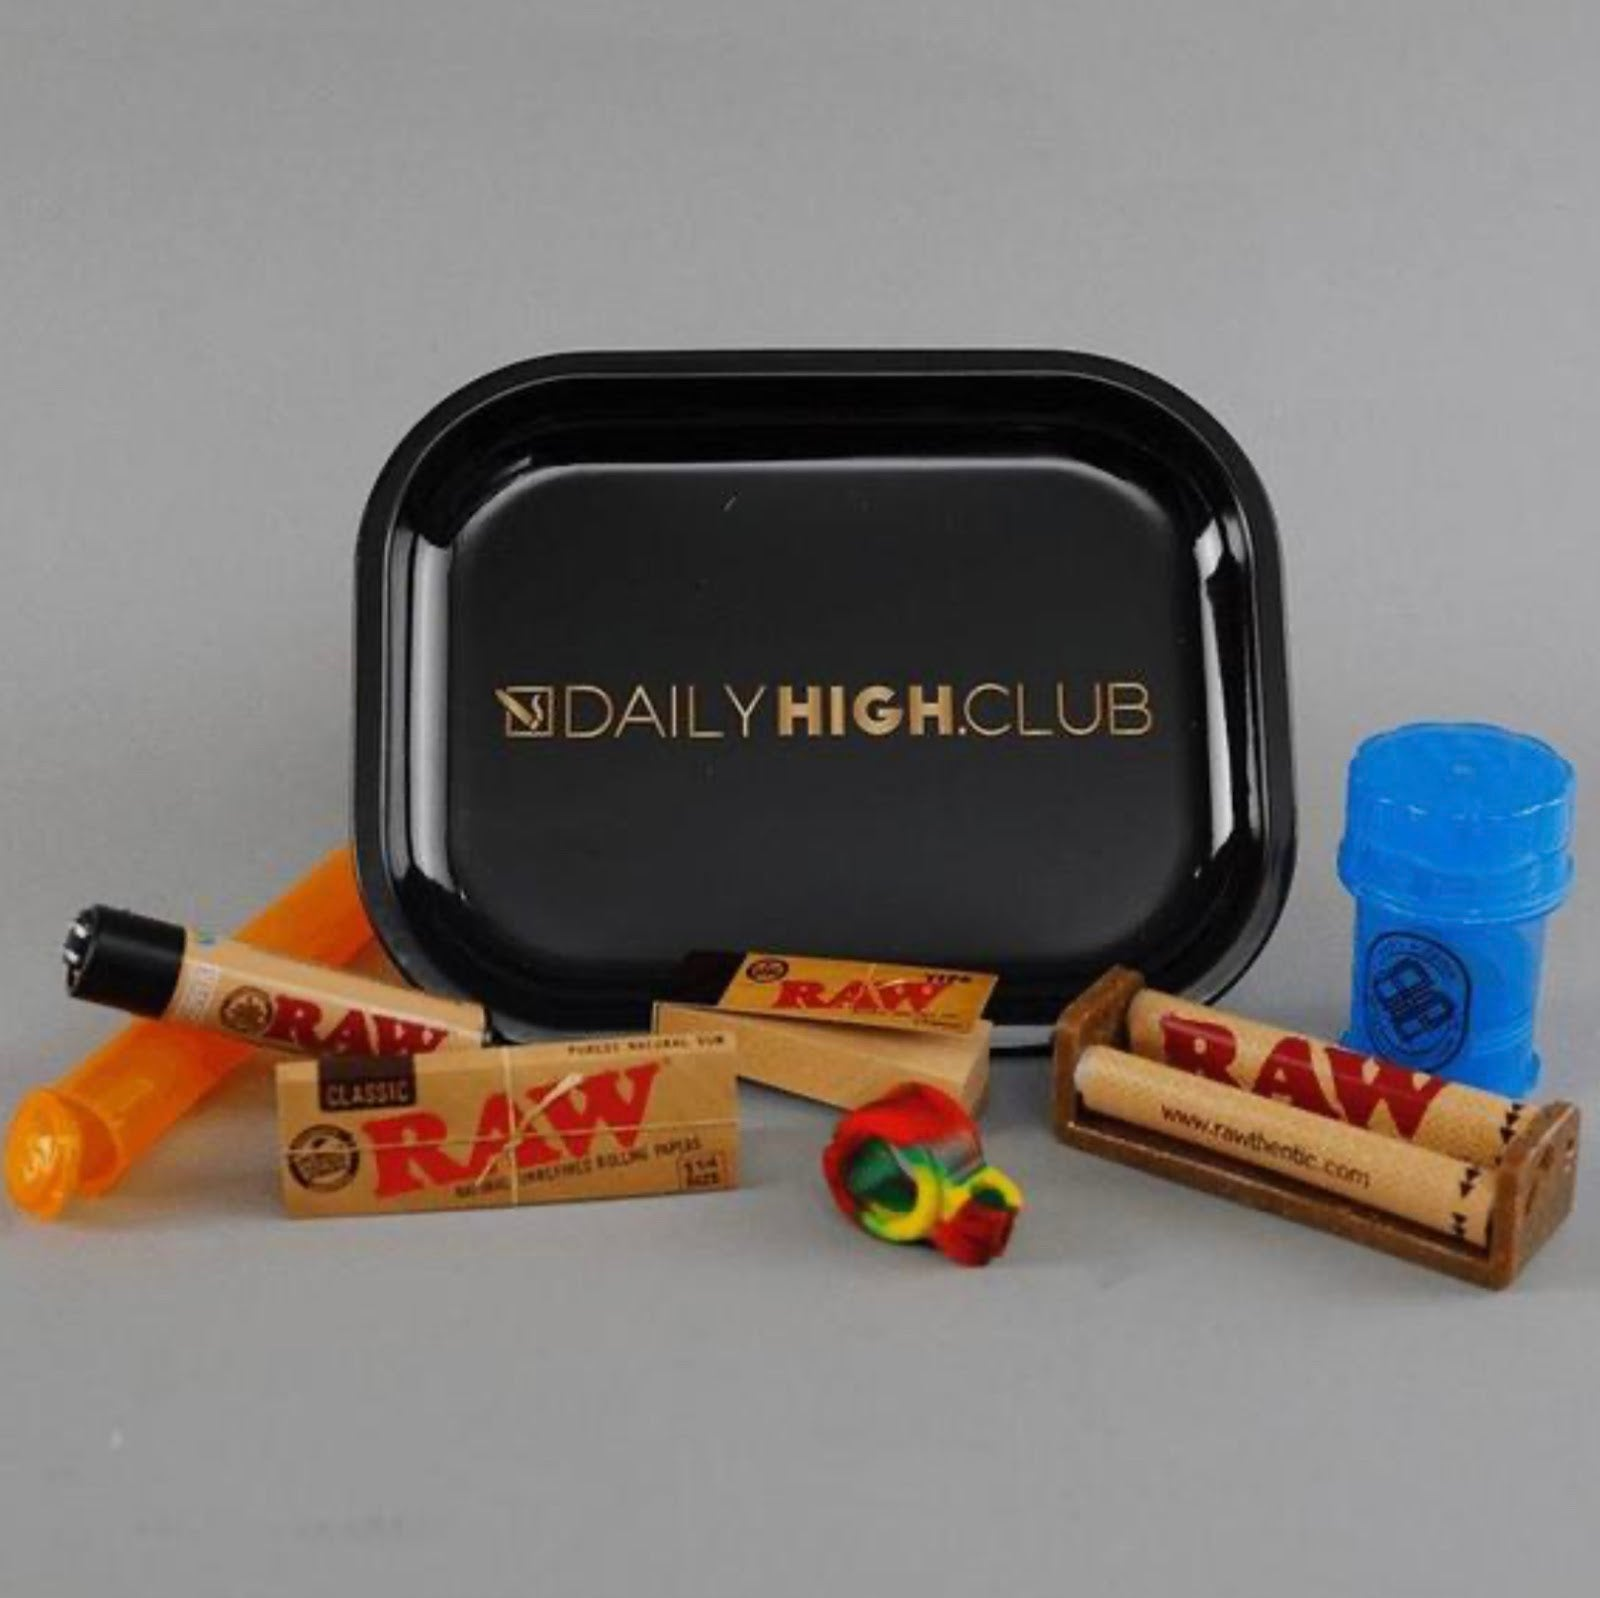 daily high club ultimate rolling tray